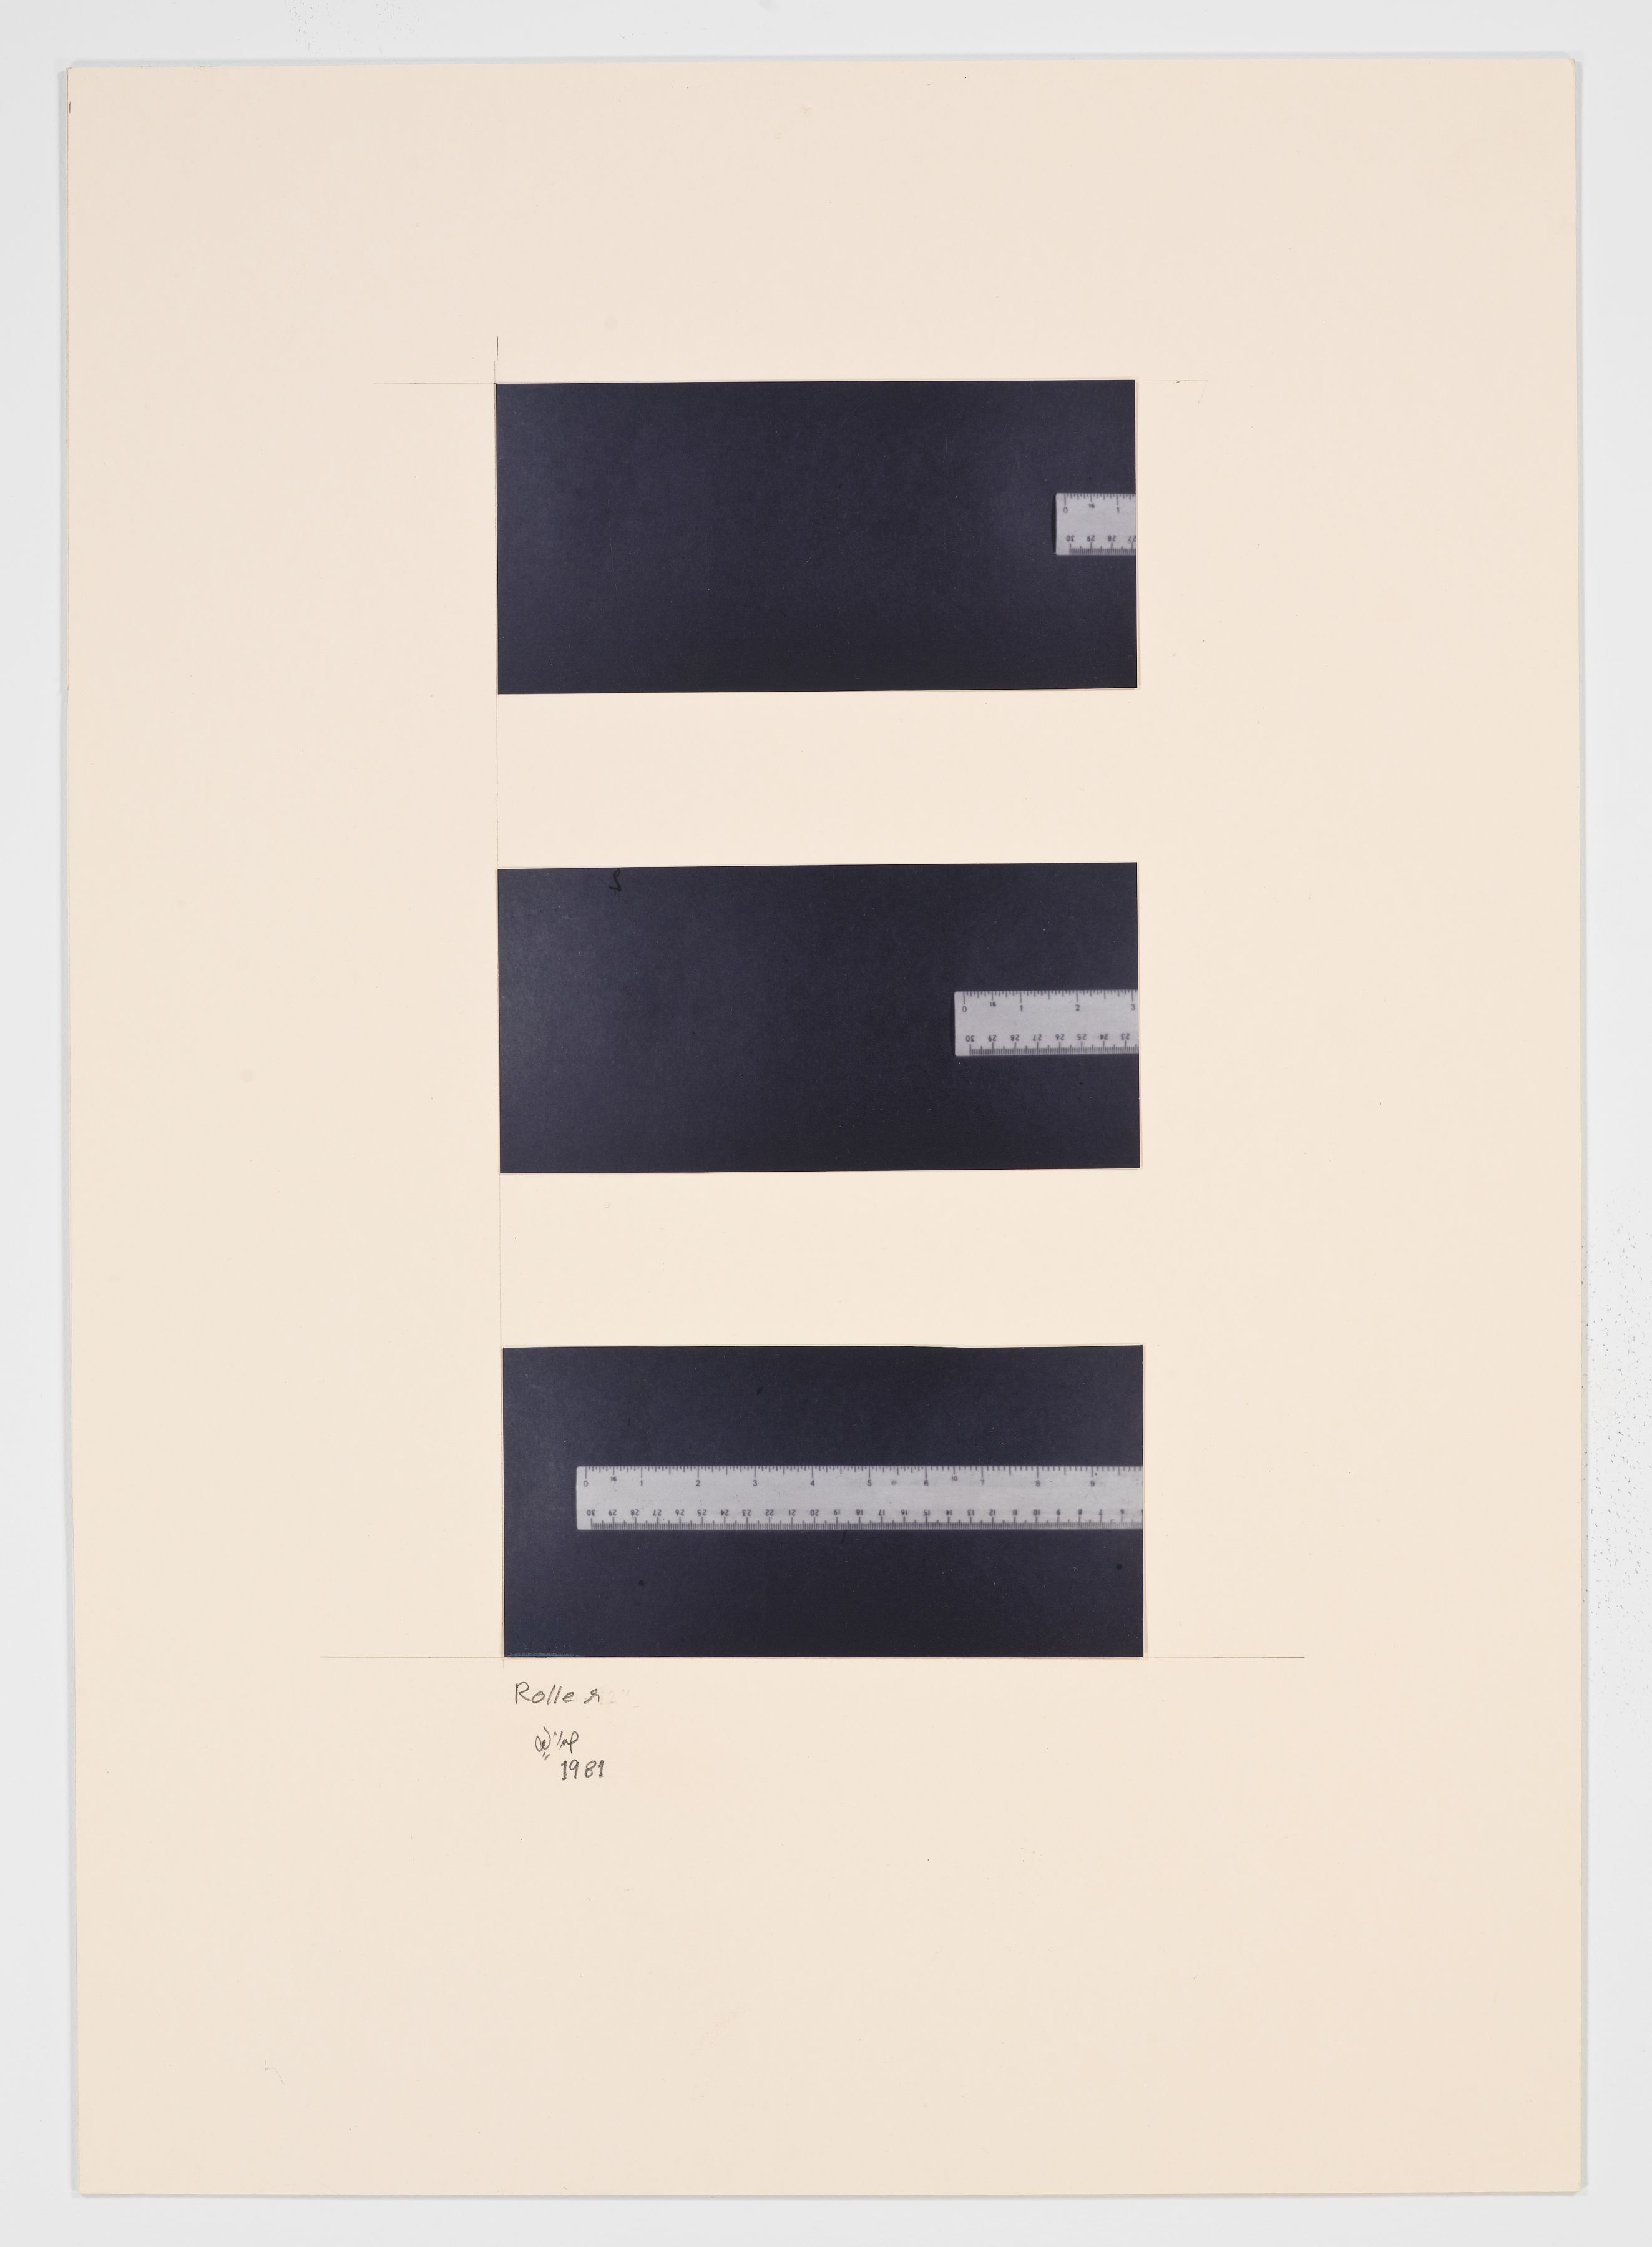 Ruler, 1981, Photographs on matteboard in 3 parts